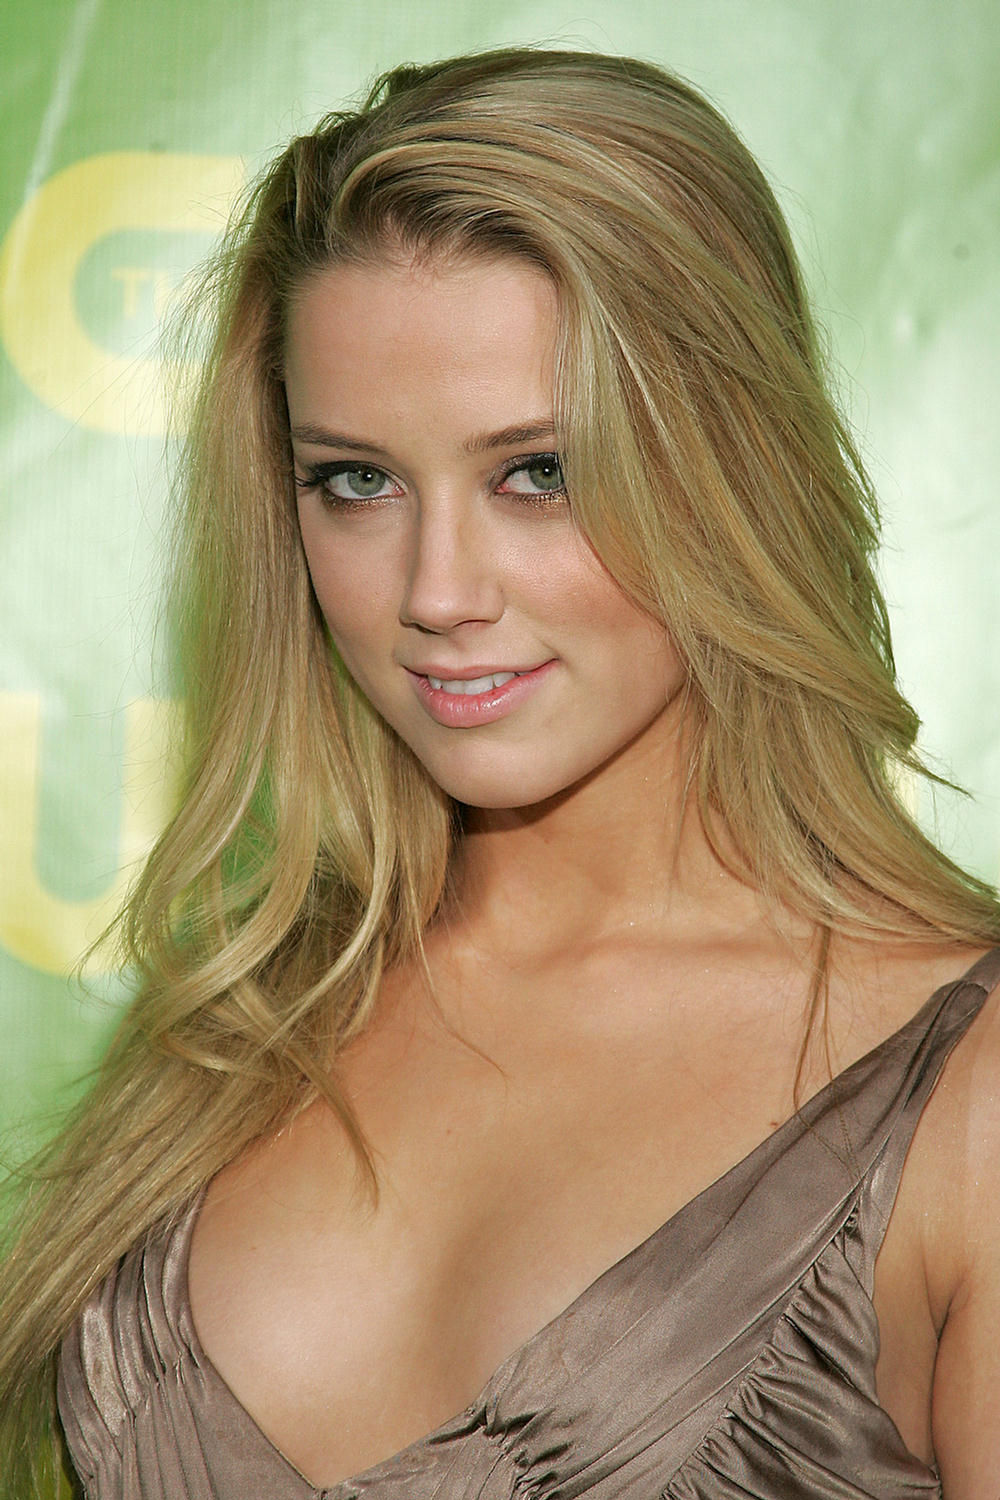 Amber Heard Images, Wallpaper, High Quality Pictures,